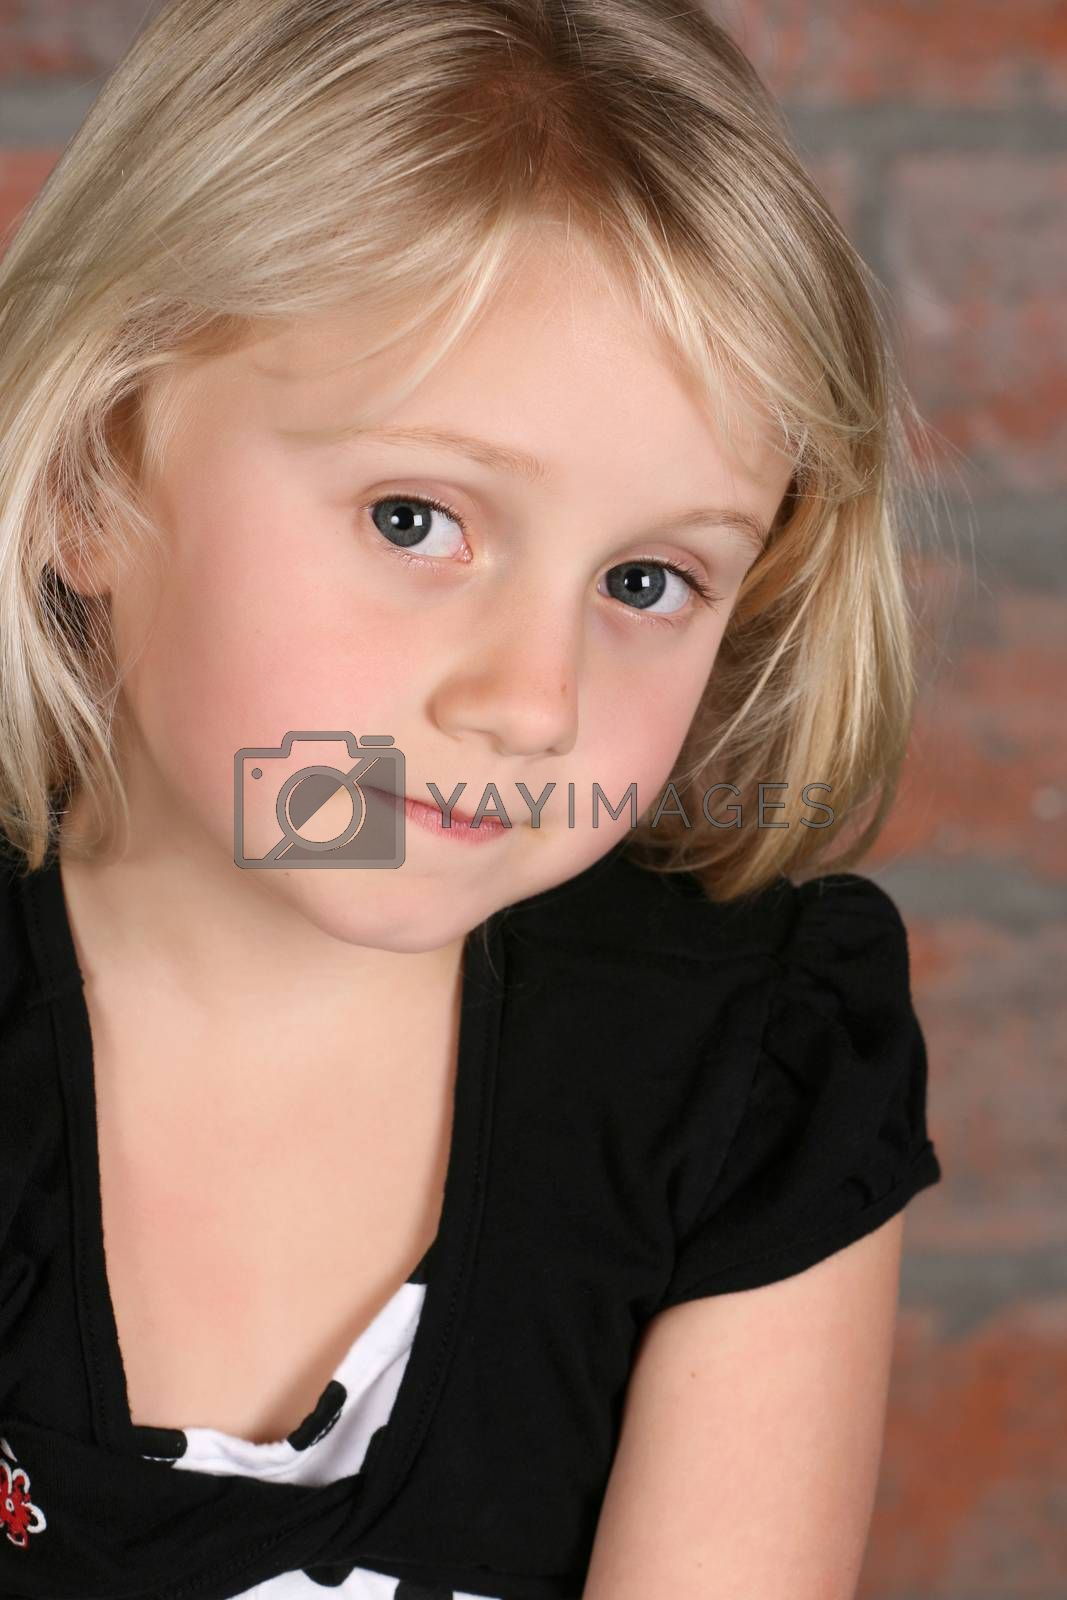 Little blond girl against a brick background